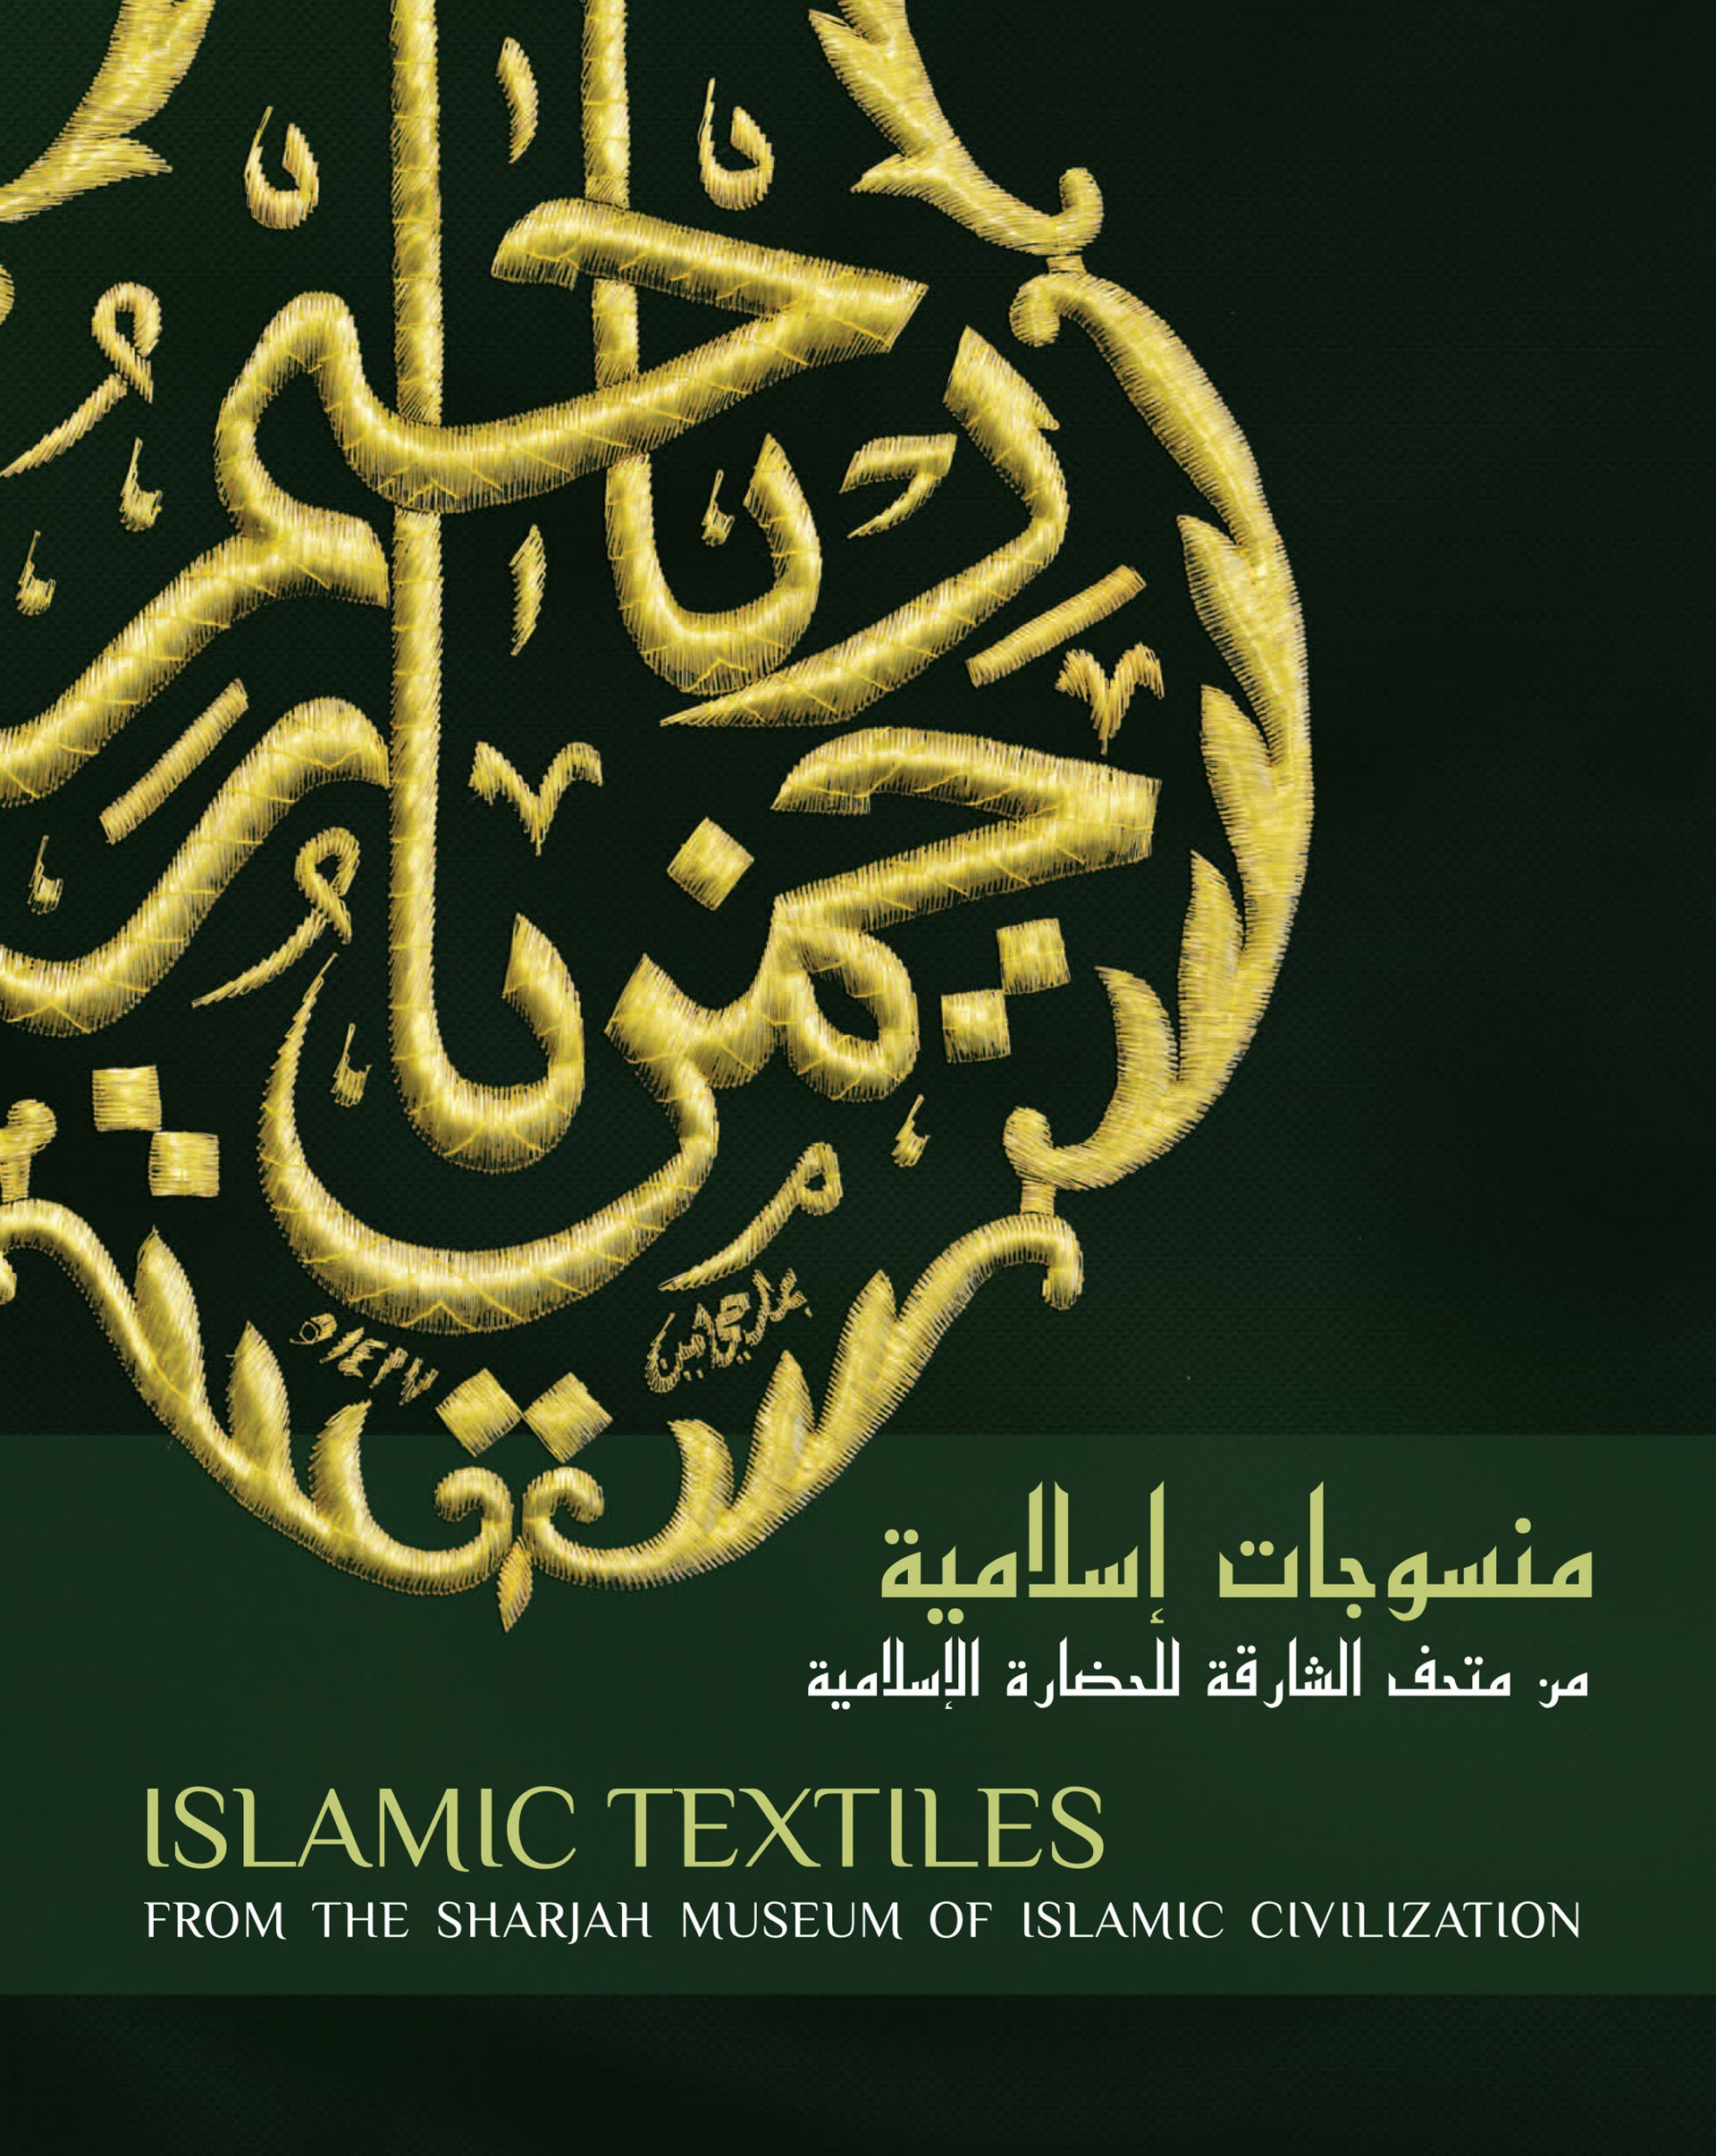 Islamic Textiles From the Sharjah Museum of Islamic Civilization